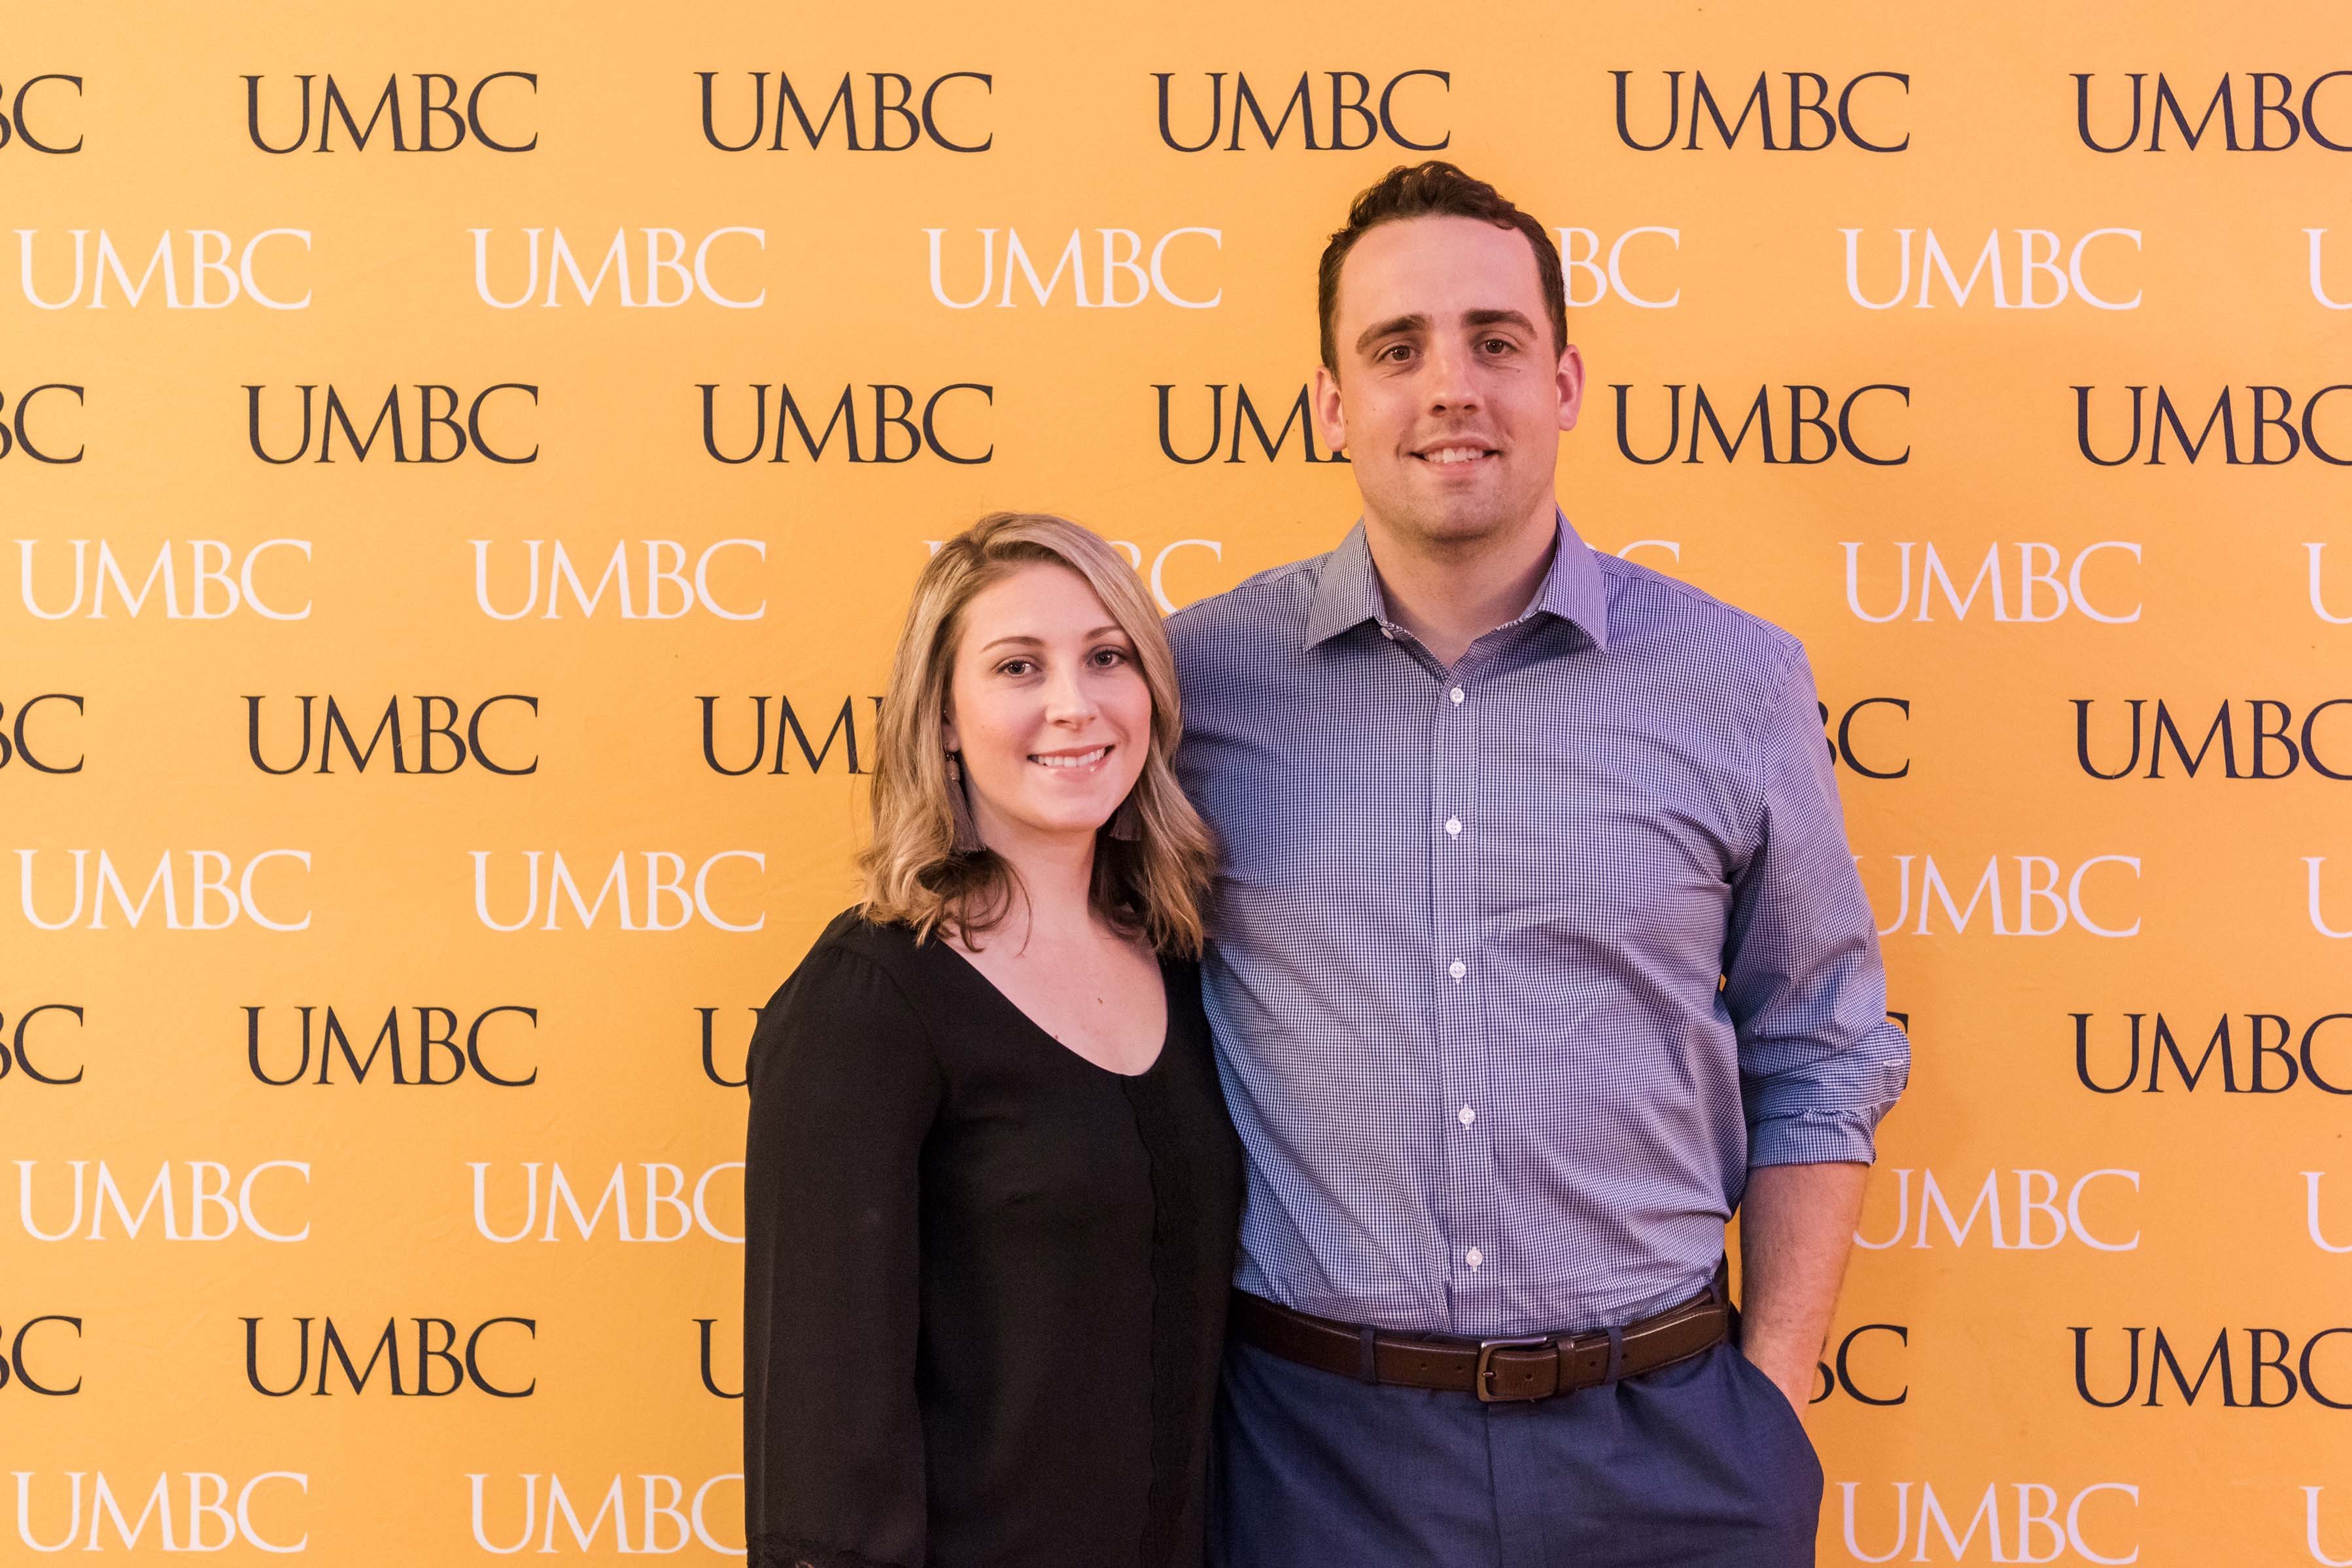 Man and woman pose with UMBC wall for wine tasting event